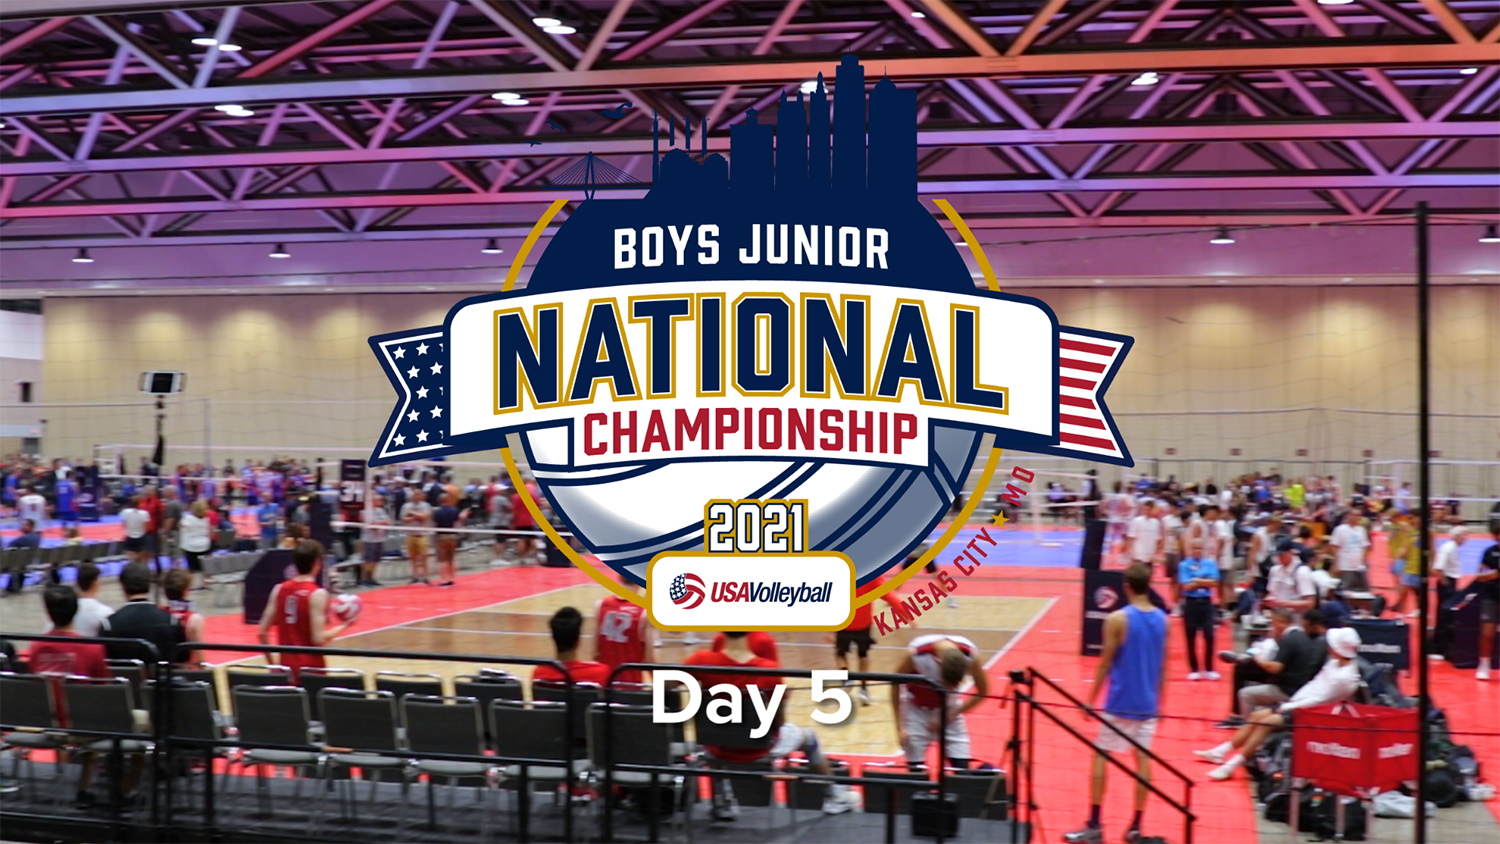 Day 5 at BJNC